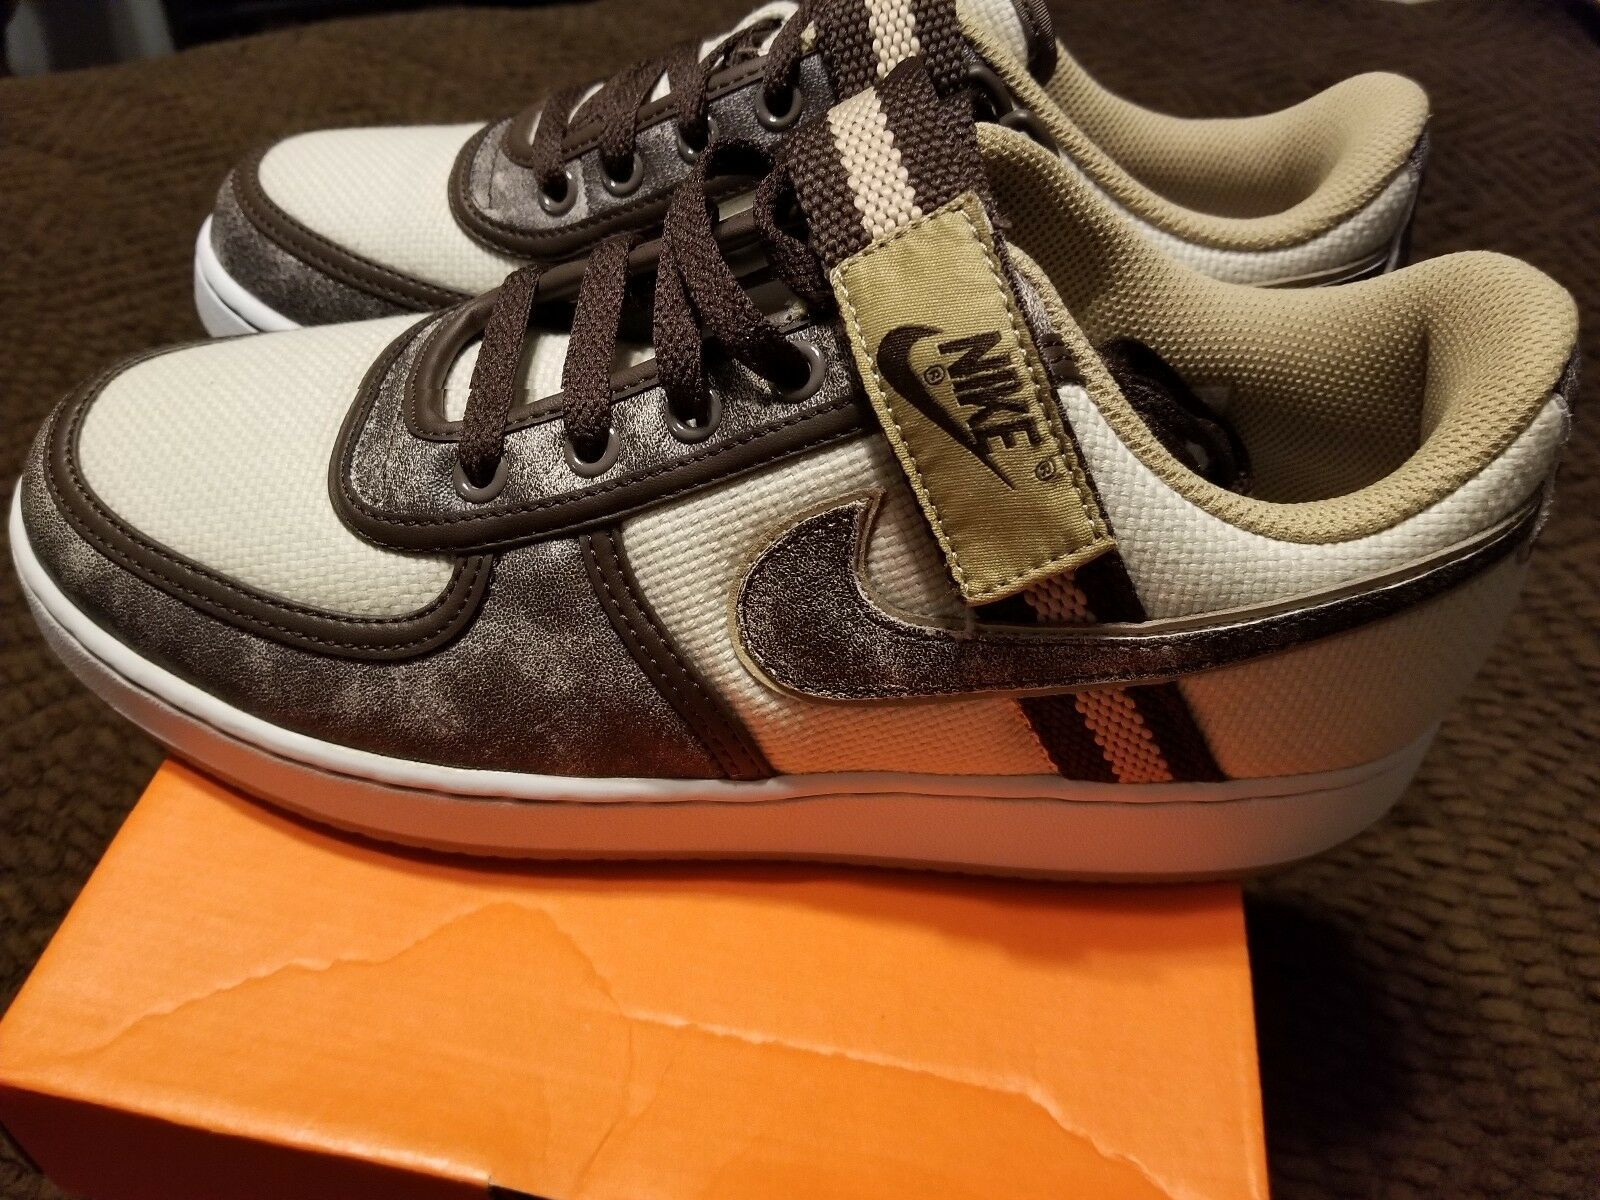 Nike Vandal Low Size US 8.5 Men 312456 021